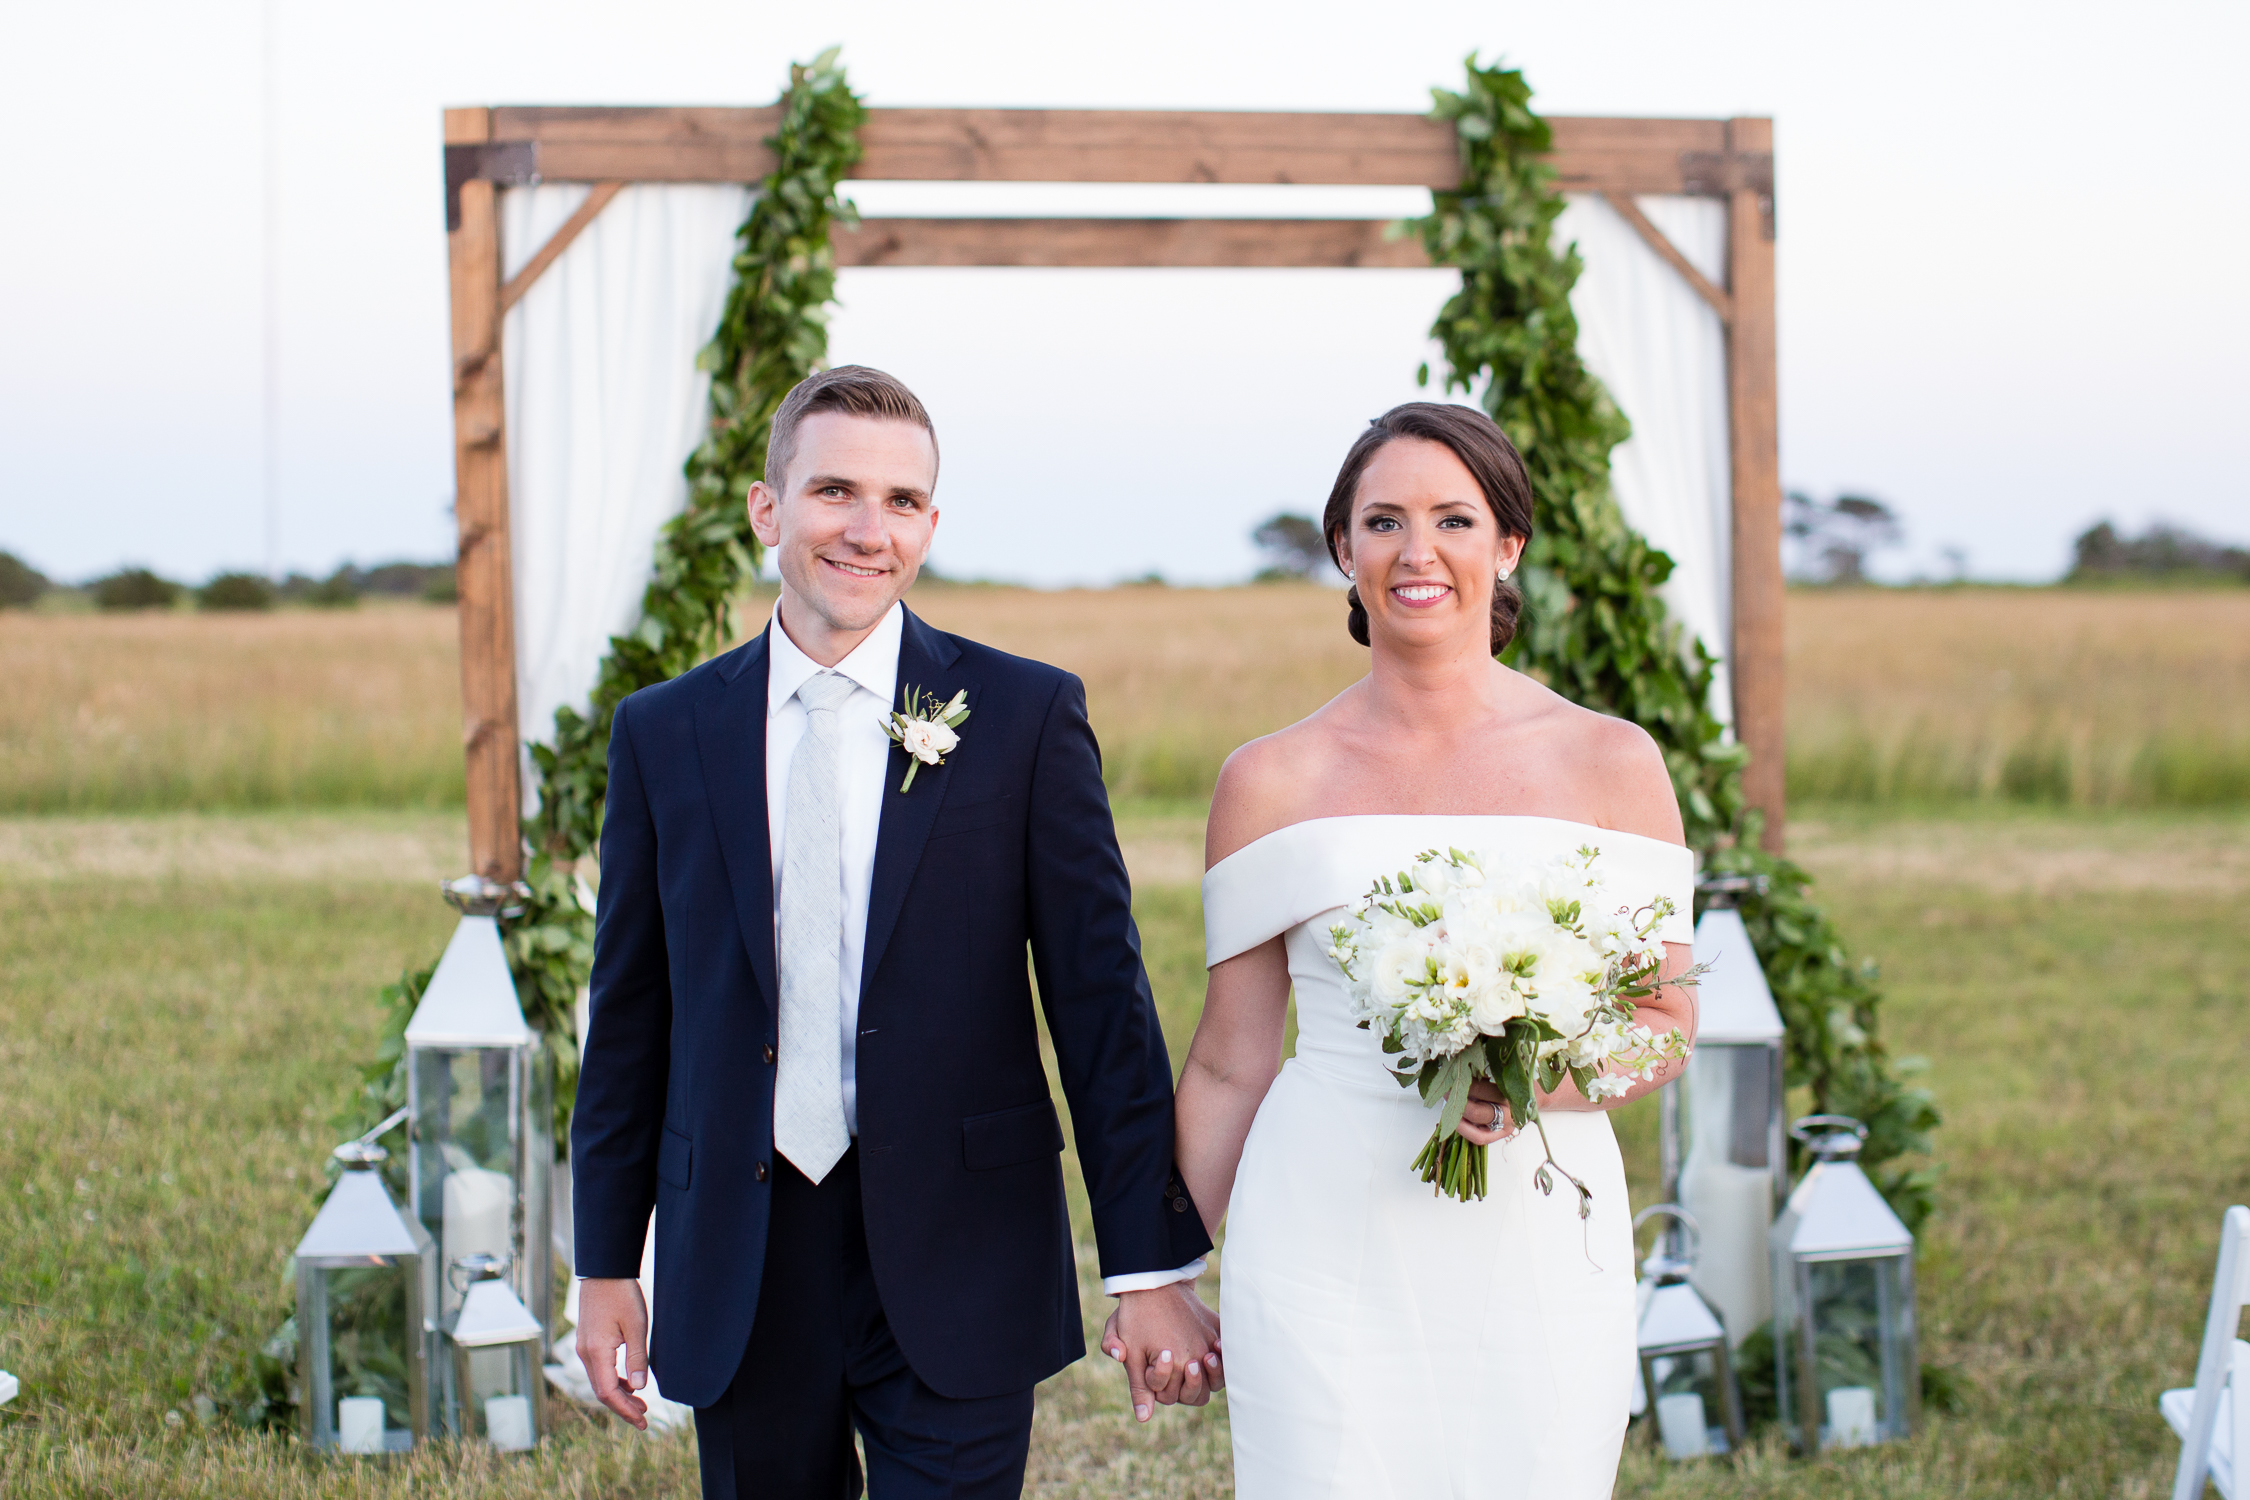 Shyla & Dan: Bartlett's Farm, Nantucket